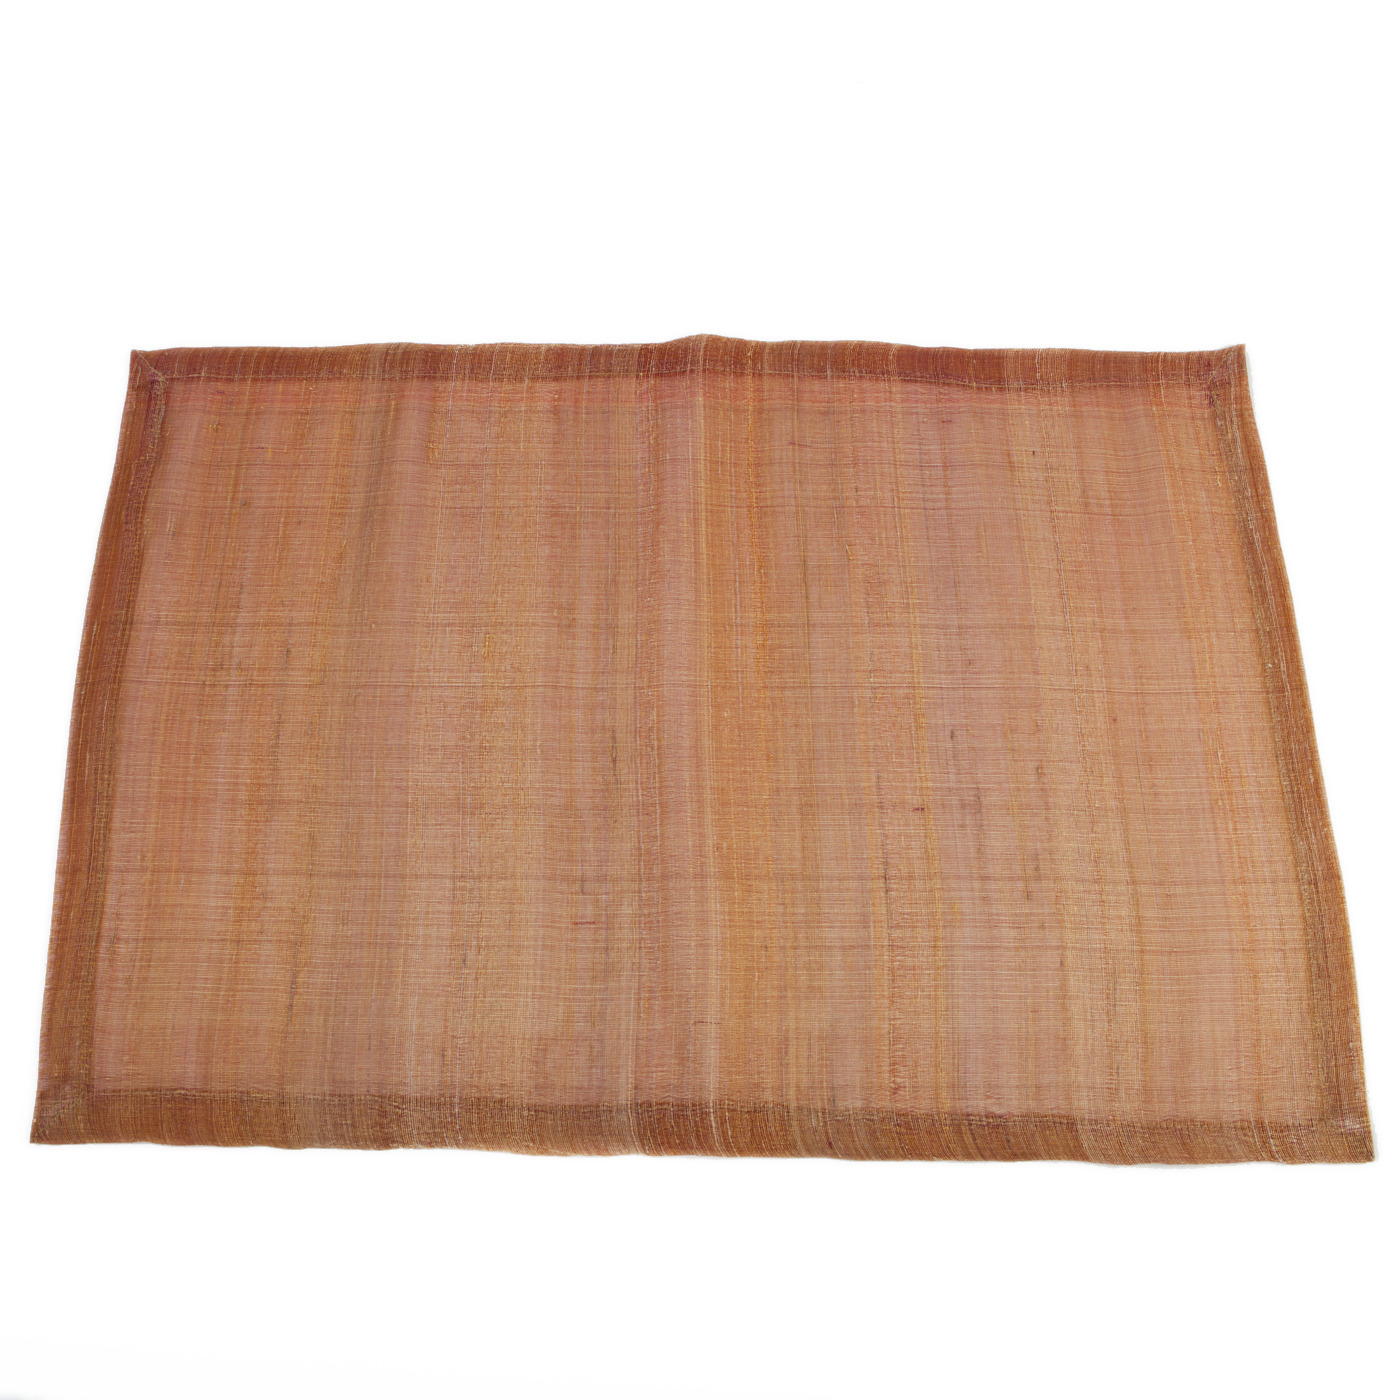 Artisan, Eco-Friendly, Designer Luminescence Place Mat